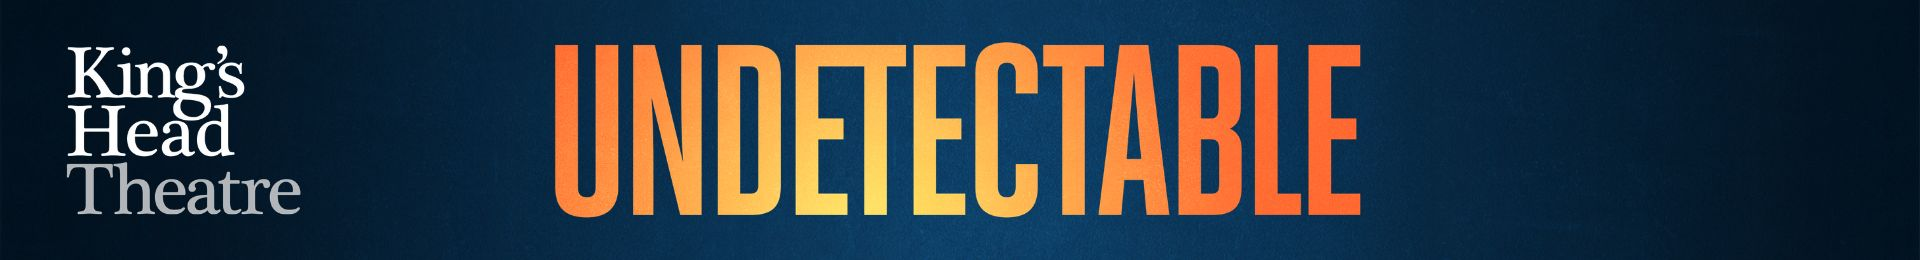 Undetectable banner image